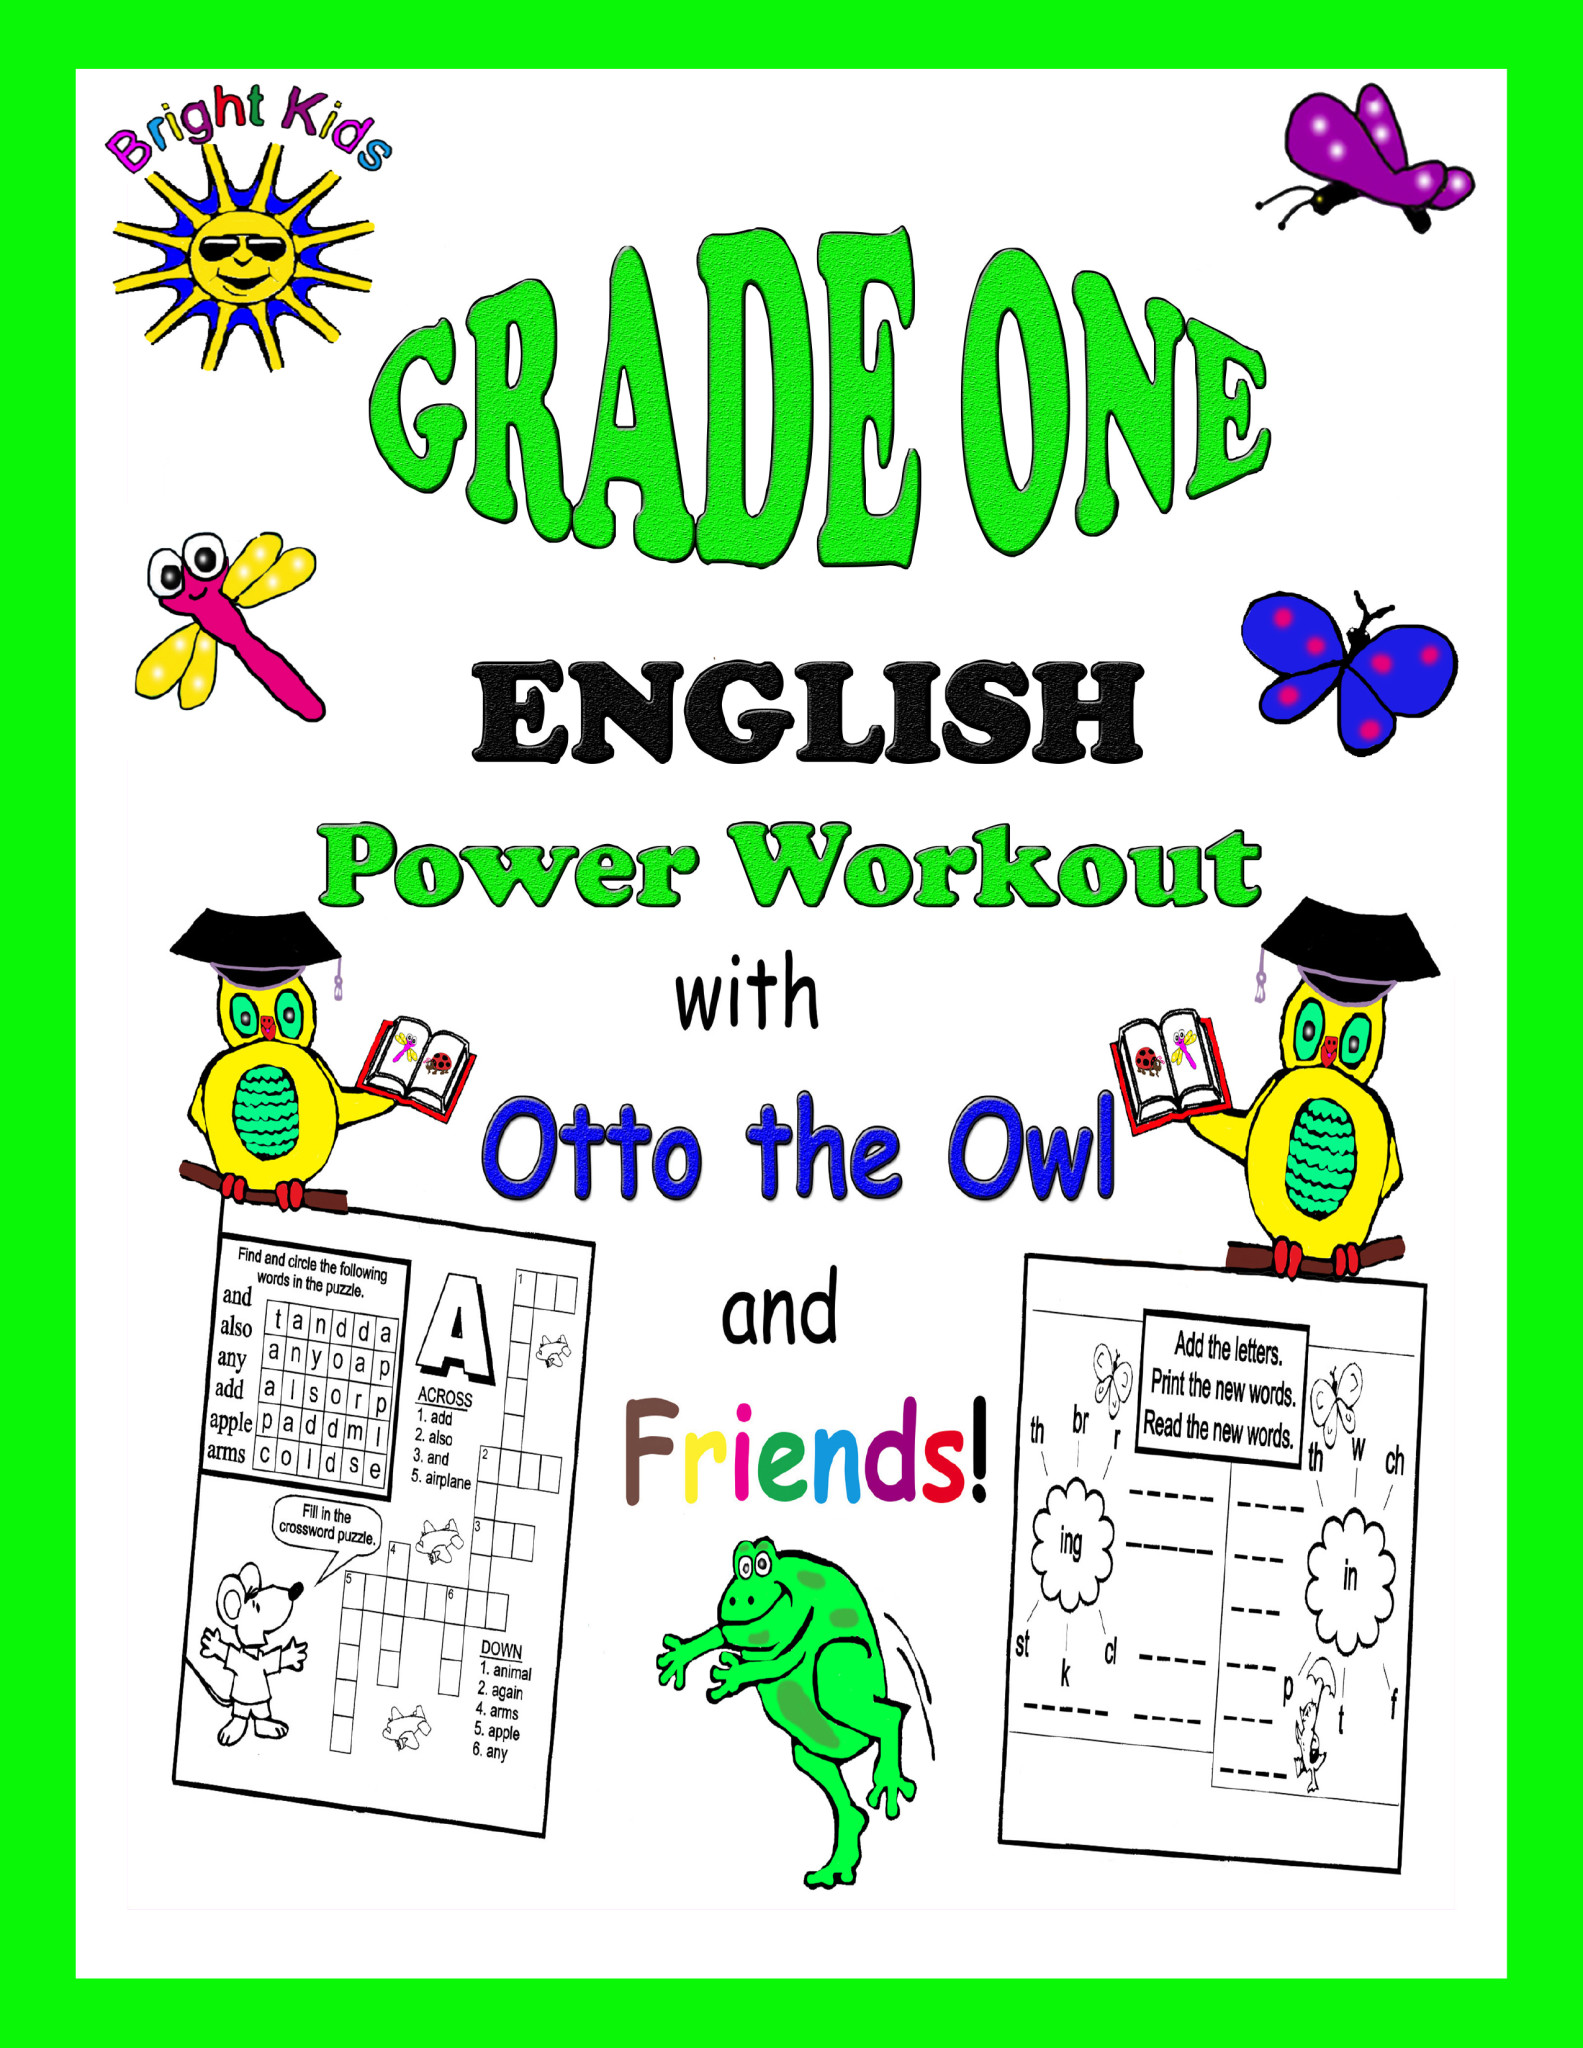 Grade 1 English Word Power Workout